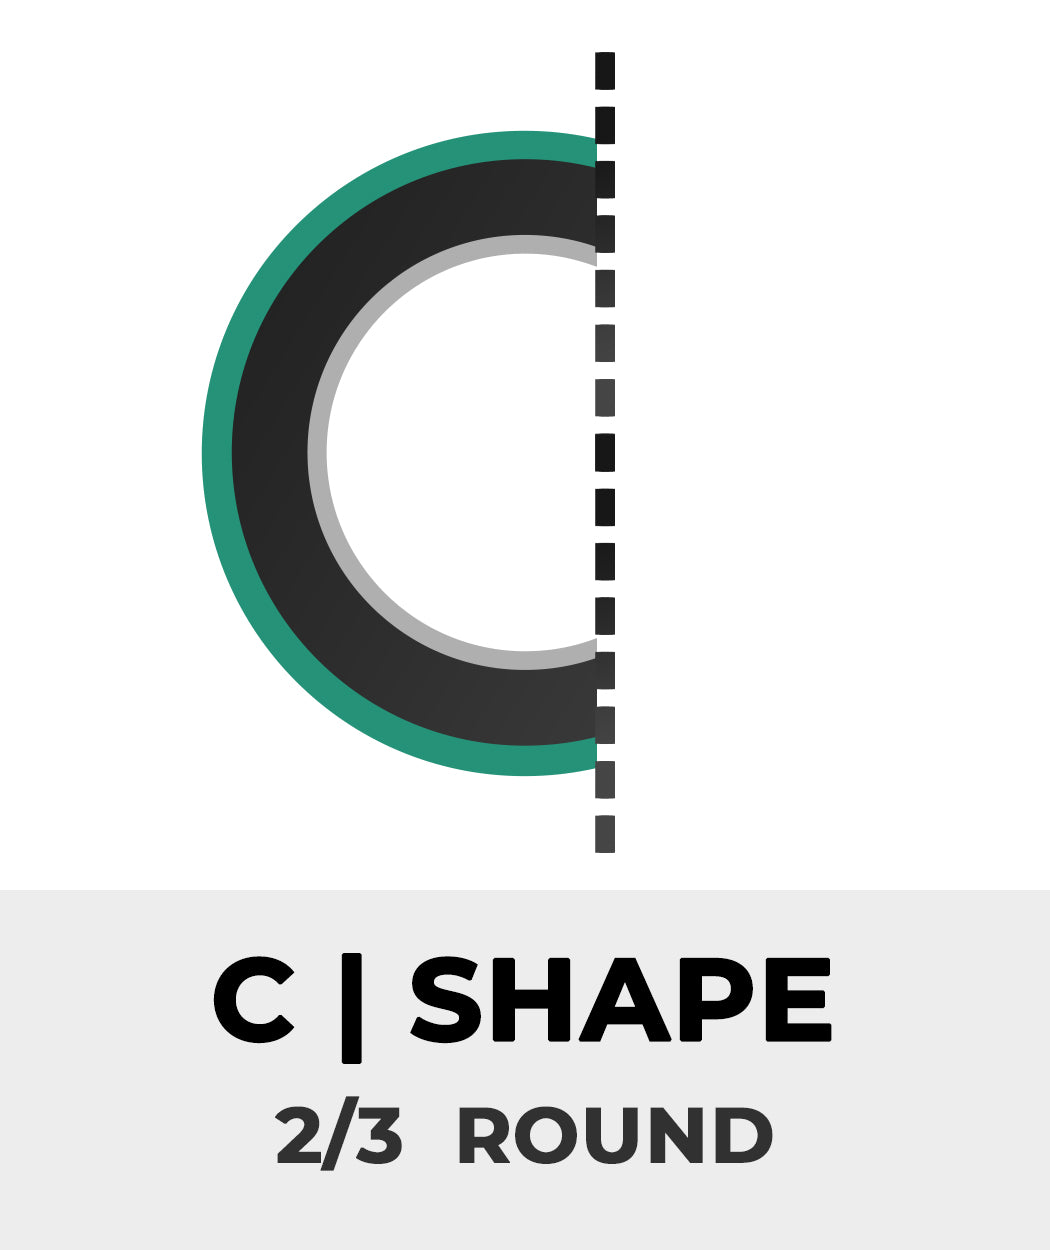 Plan Shape C - 2/3 Round